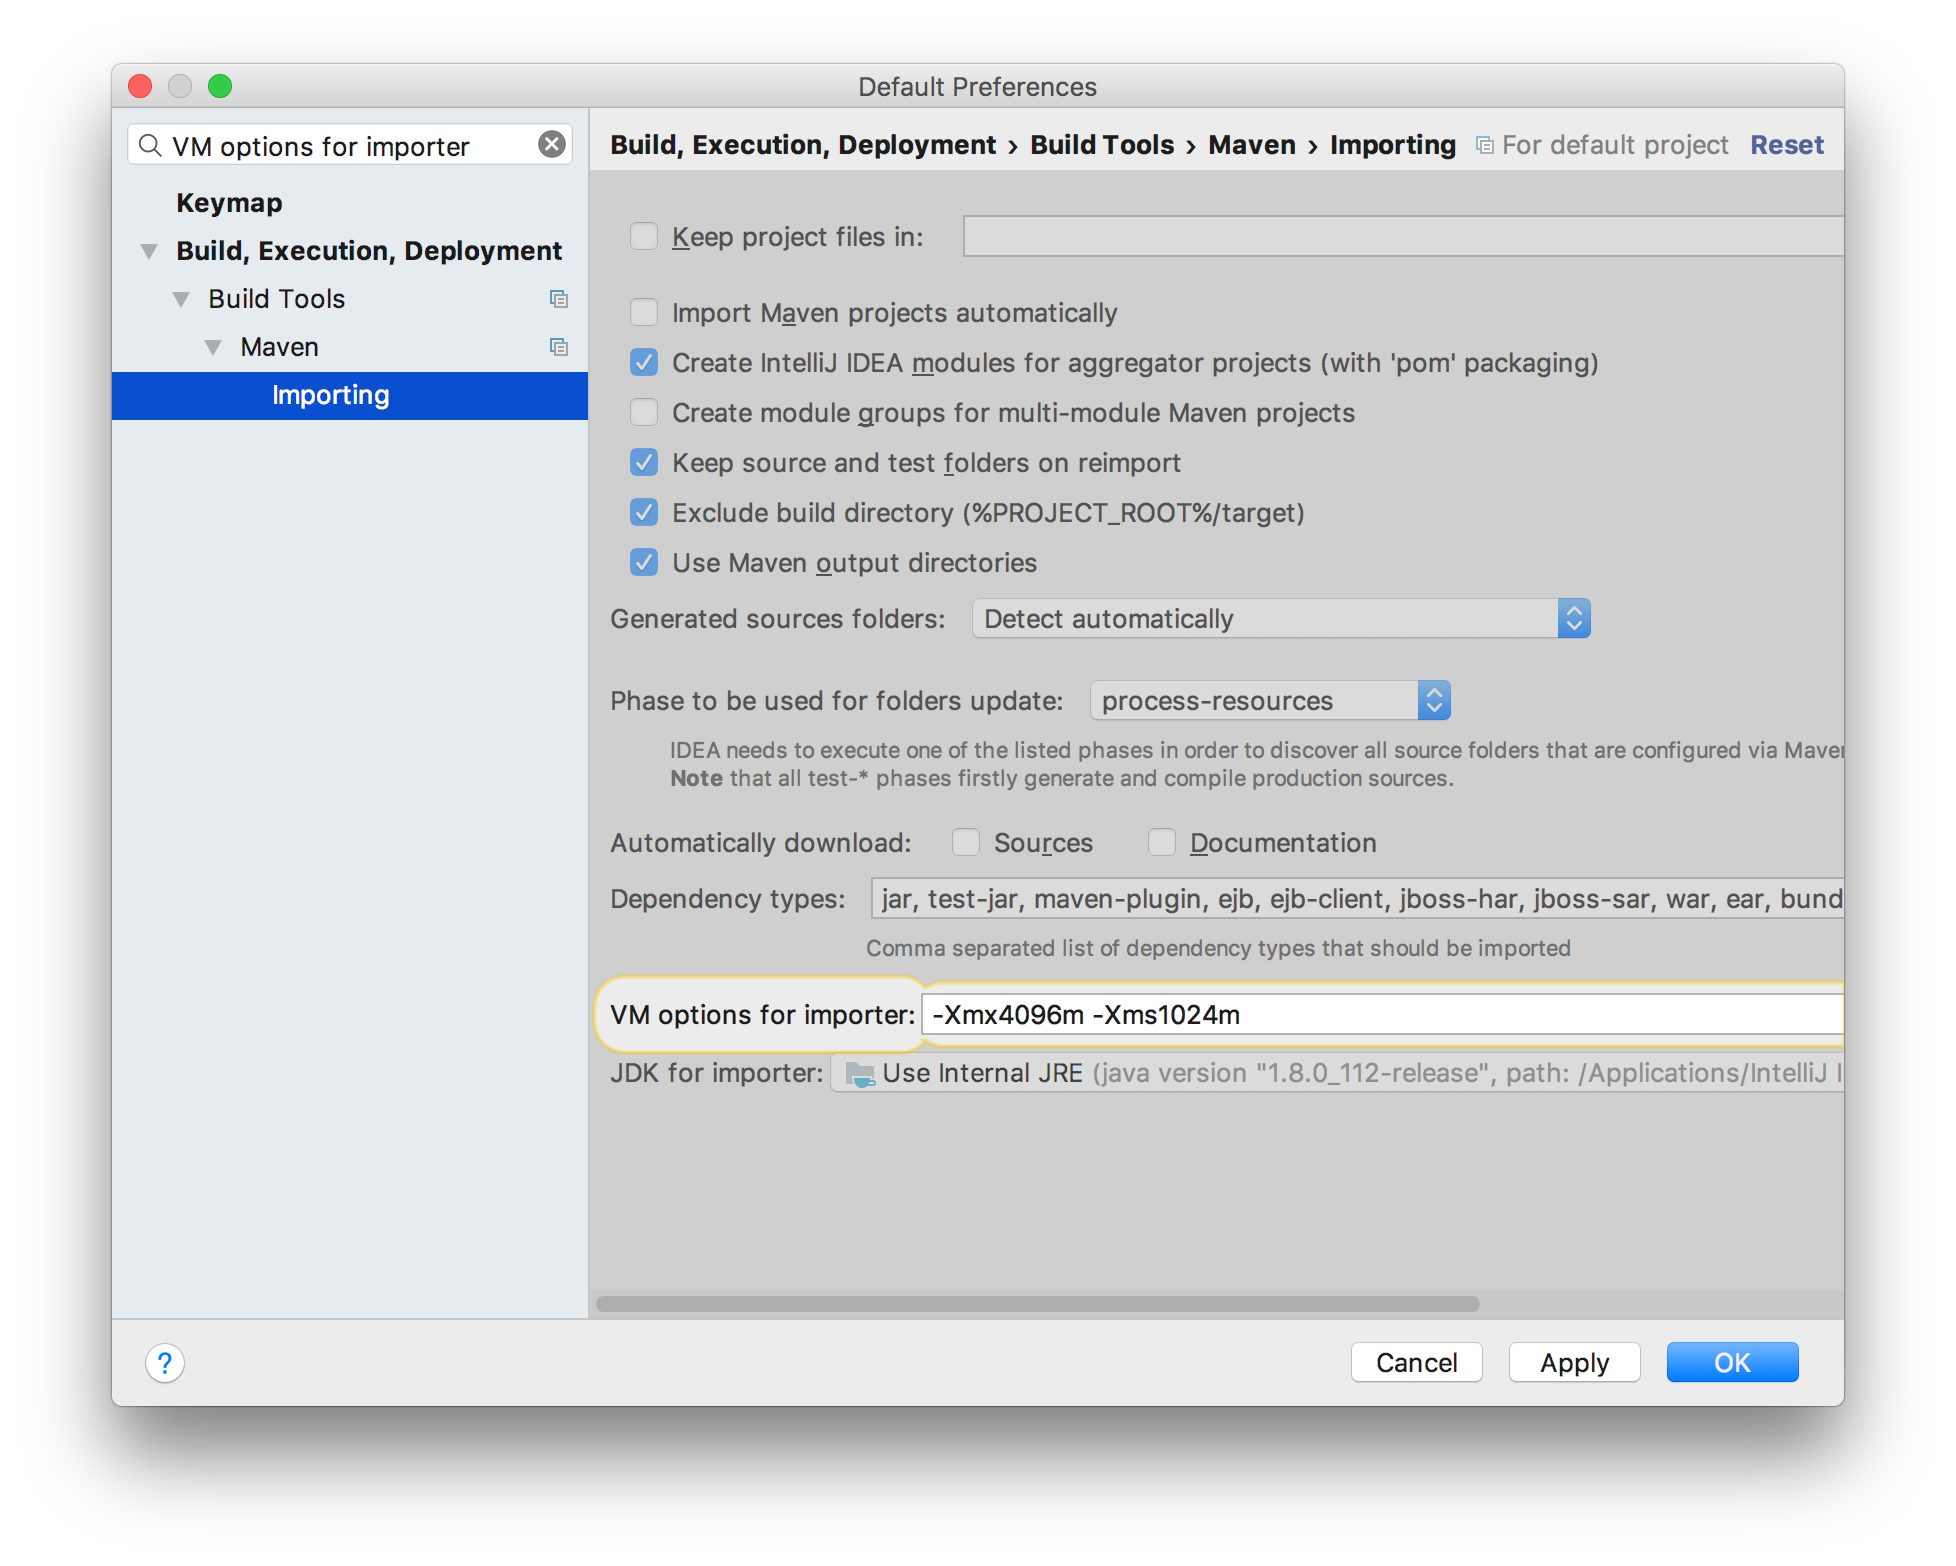 IntelliJ - VM options for importer